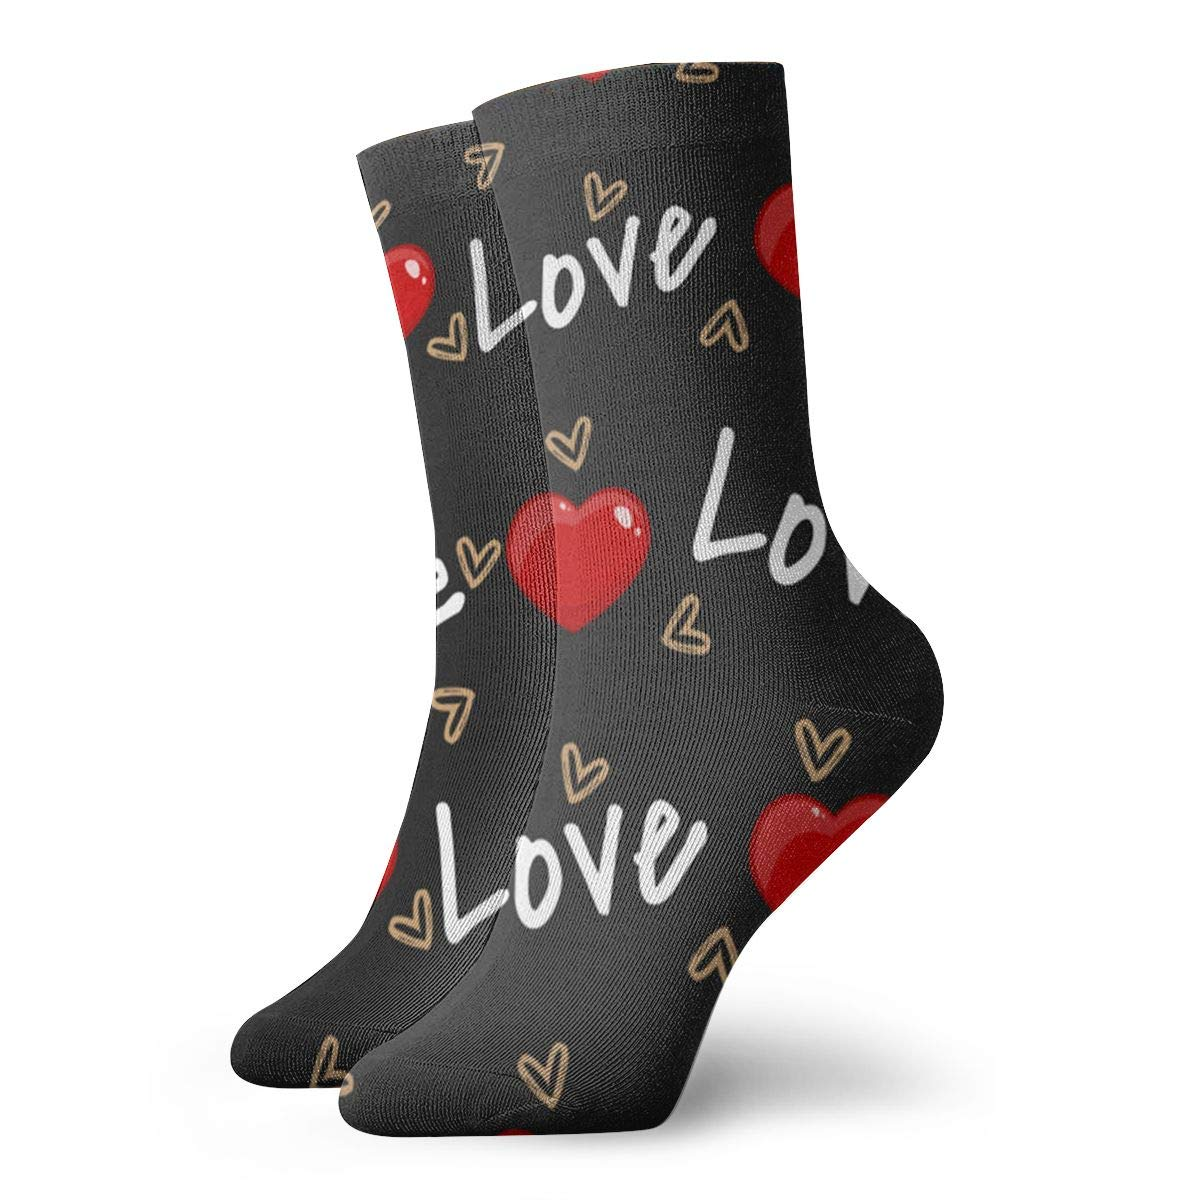 Valentines Day Unisex Funny Casual Crew Socks Athletic Socks For Boys Girls Kids Teenagers